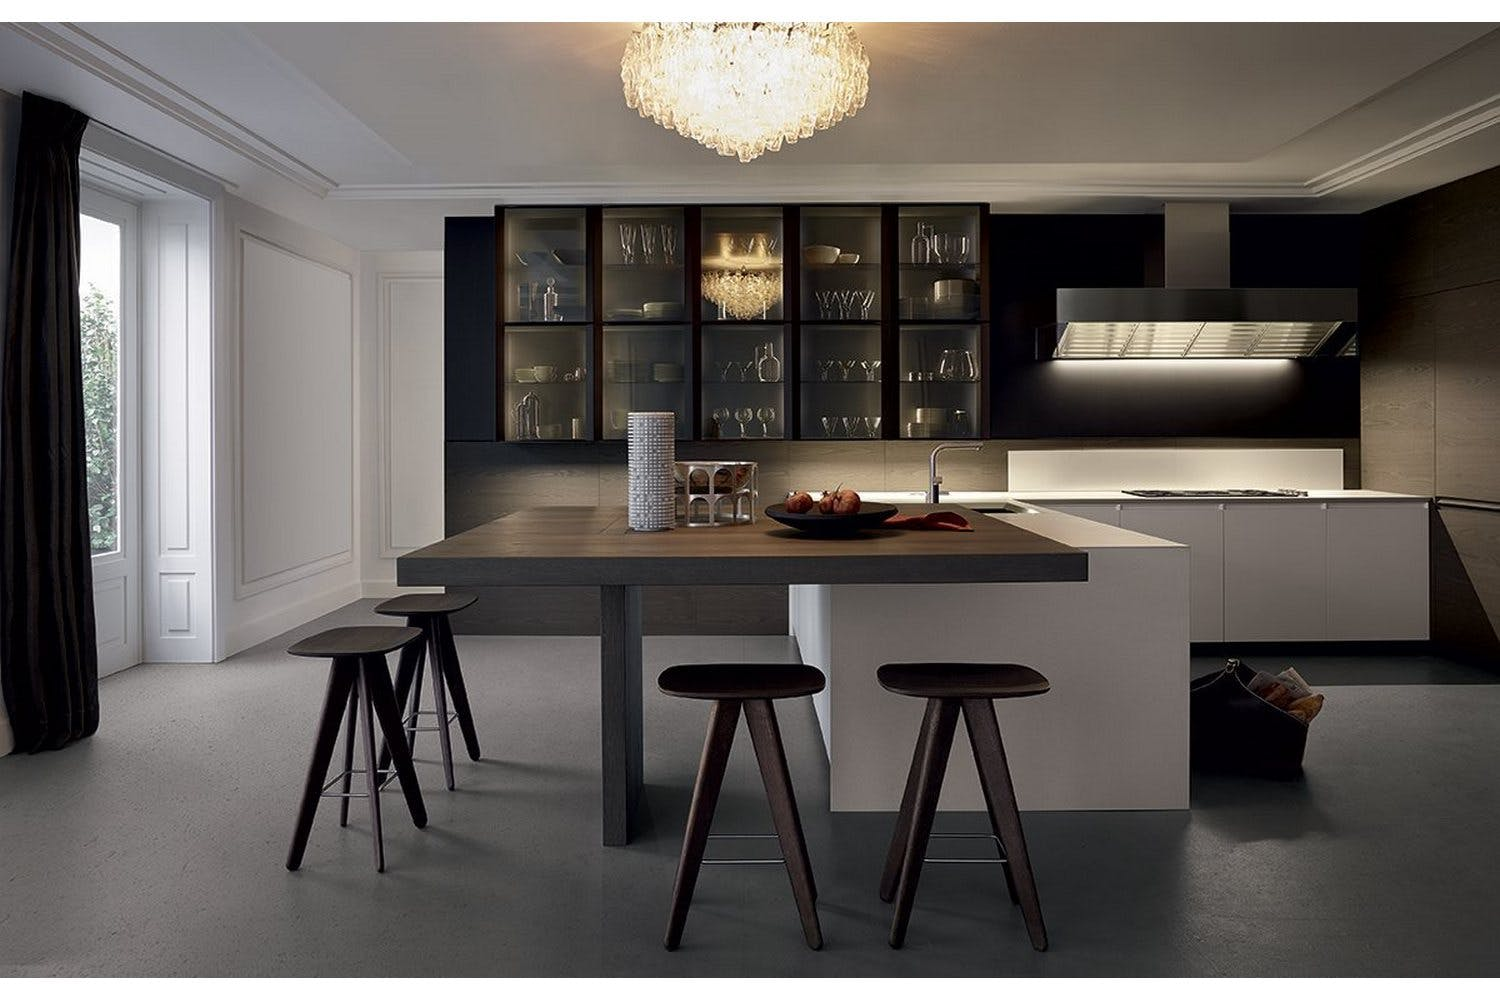 Poliform Kitchen Design. Trail Kitchen by Carlo Colombo  R D Varenna for Poliform Contemporary Designs Australia